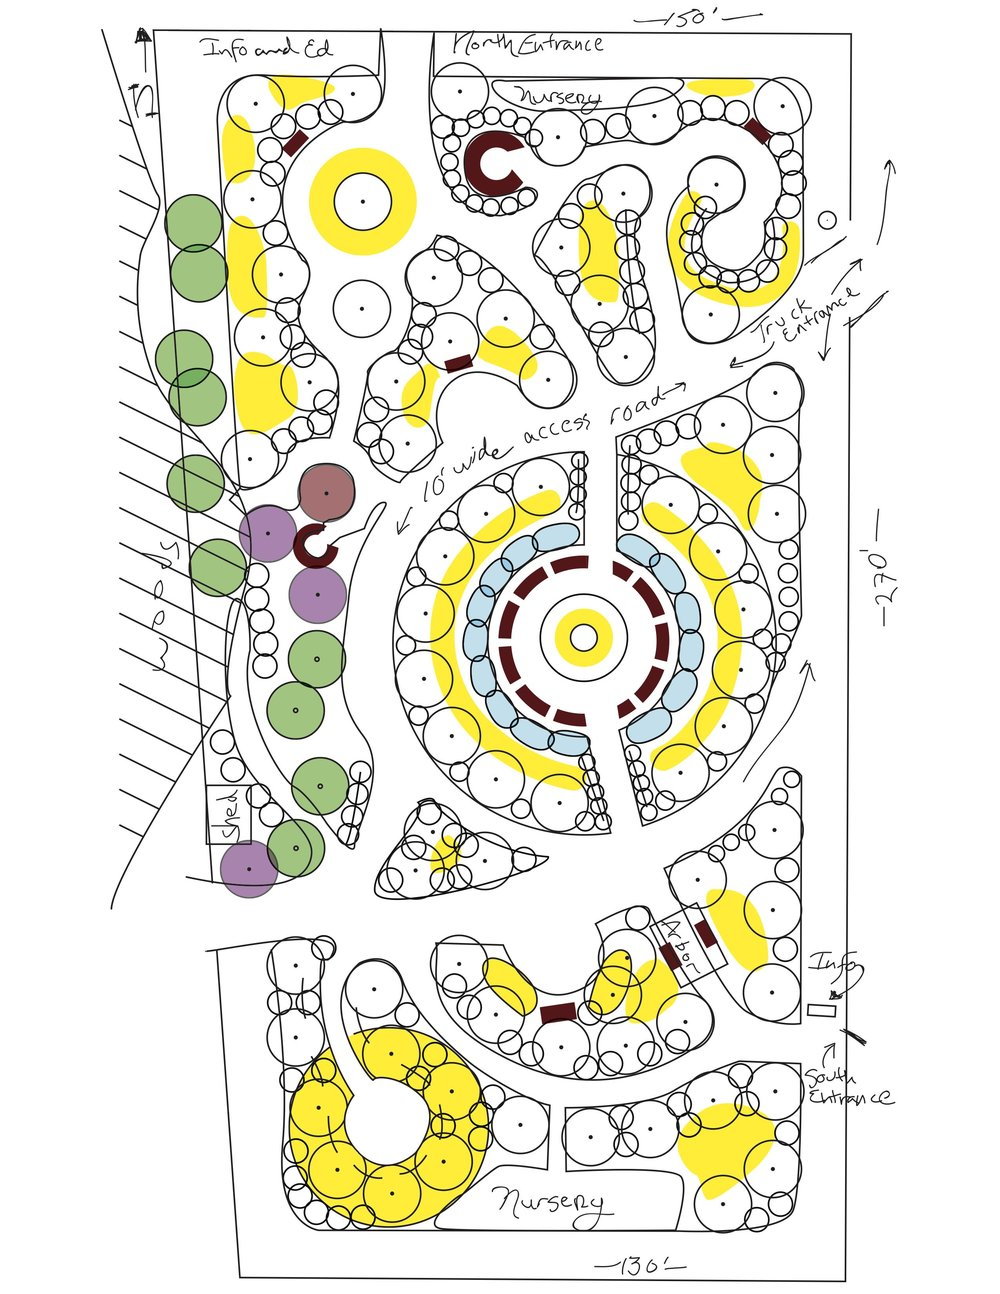 Map of the orchard originally used on BCO's website and print materials, created by Larry Buchanan.